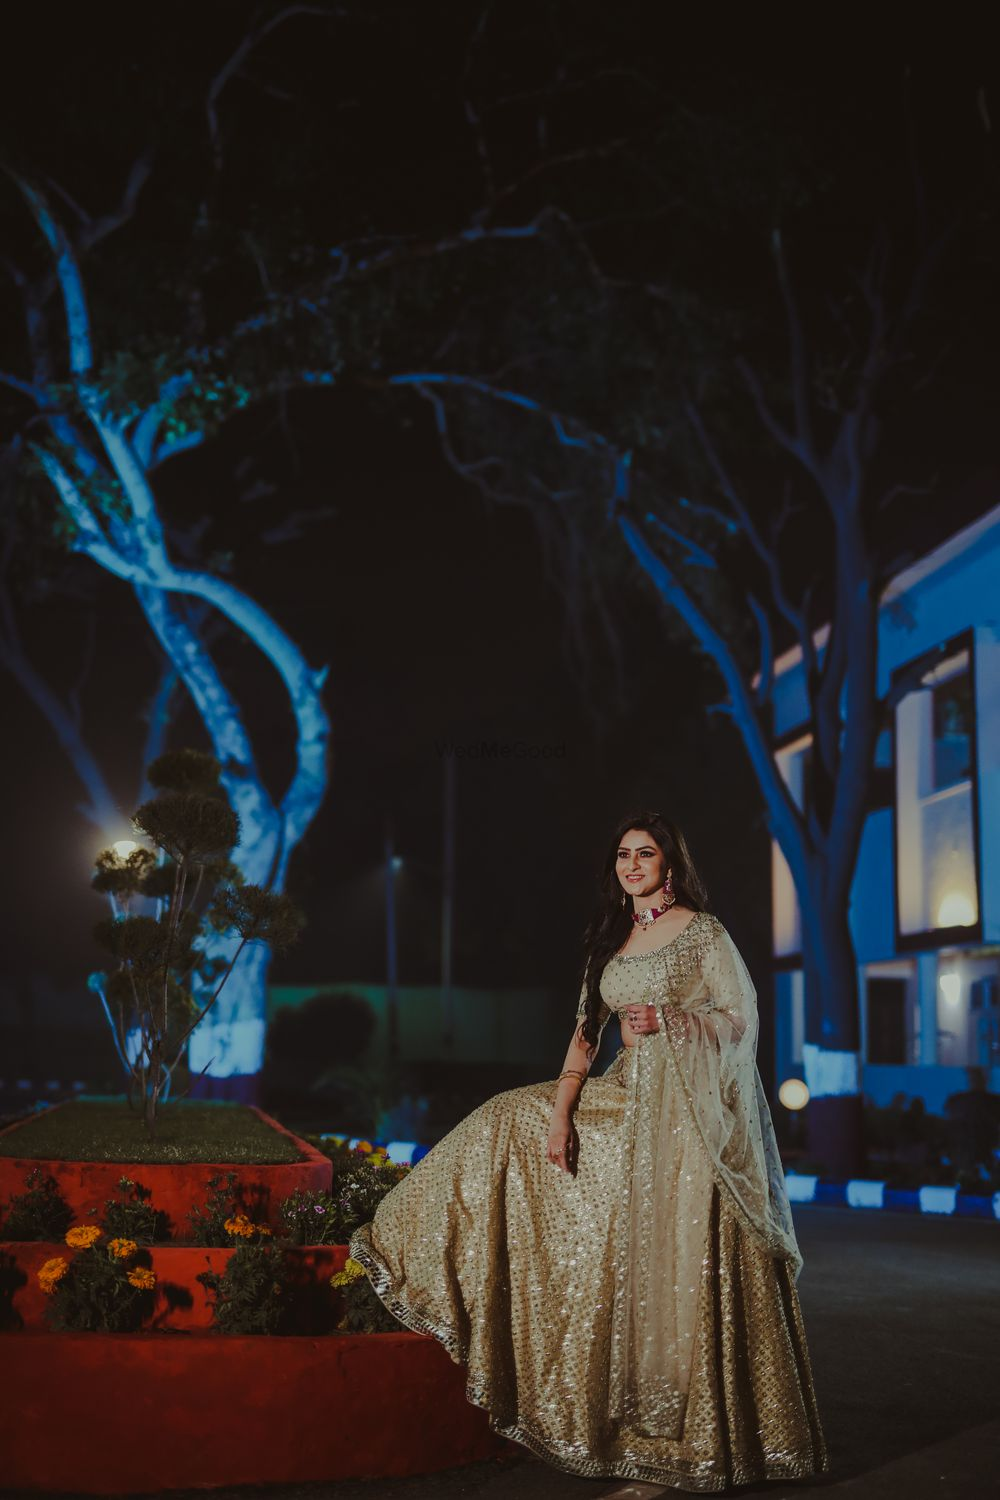 Photo From Siddhant and Nikita - By Omega Productions